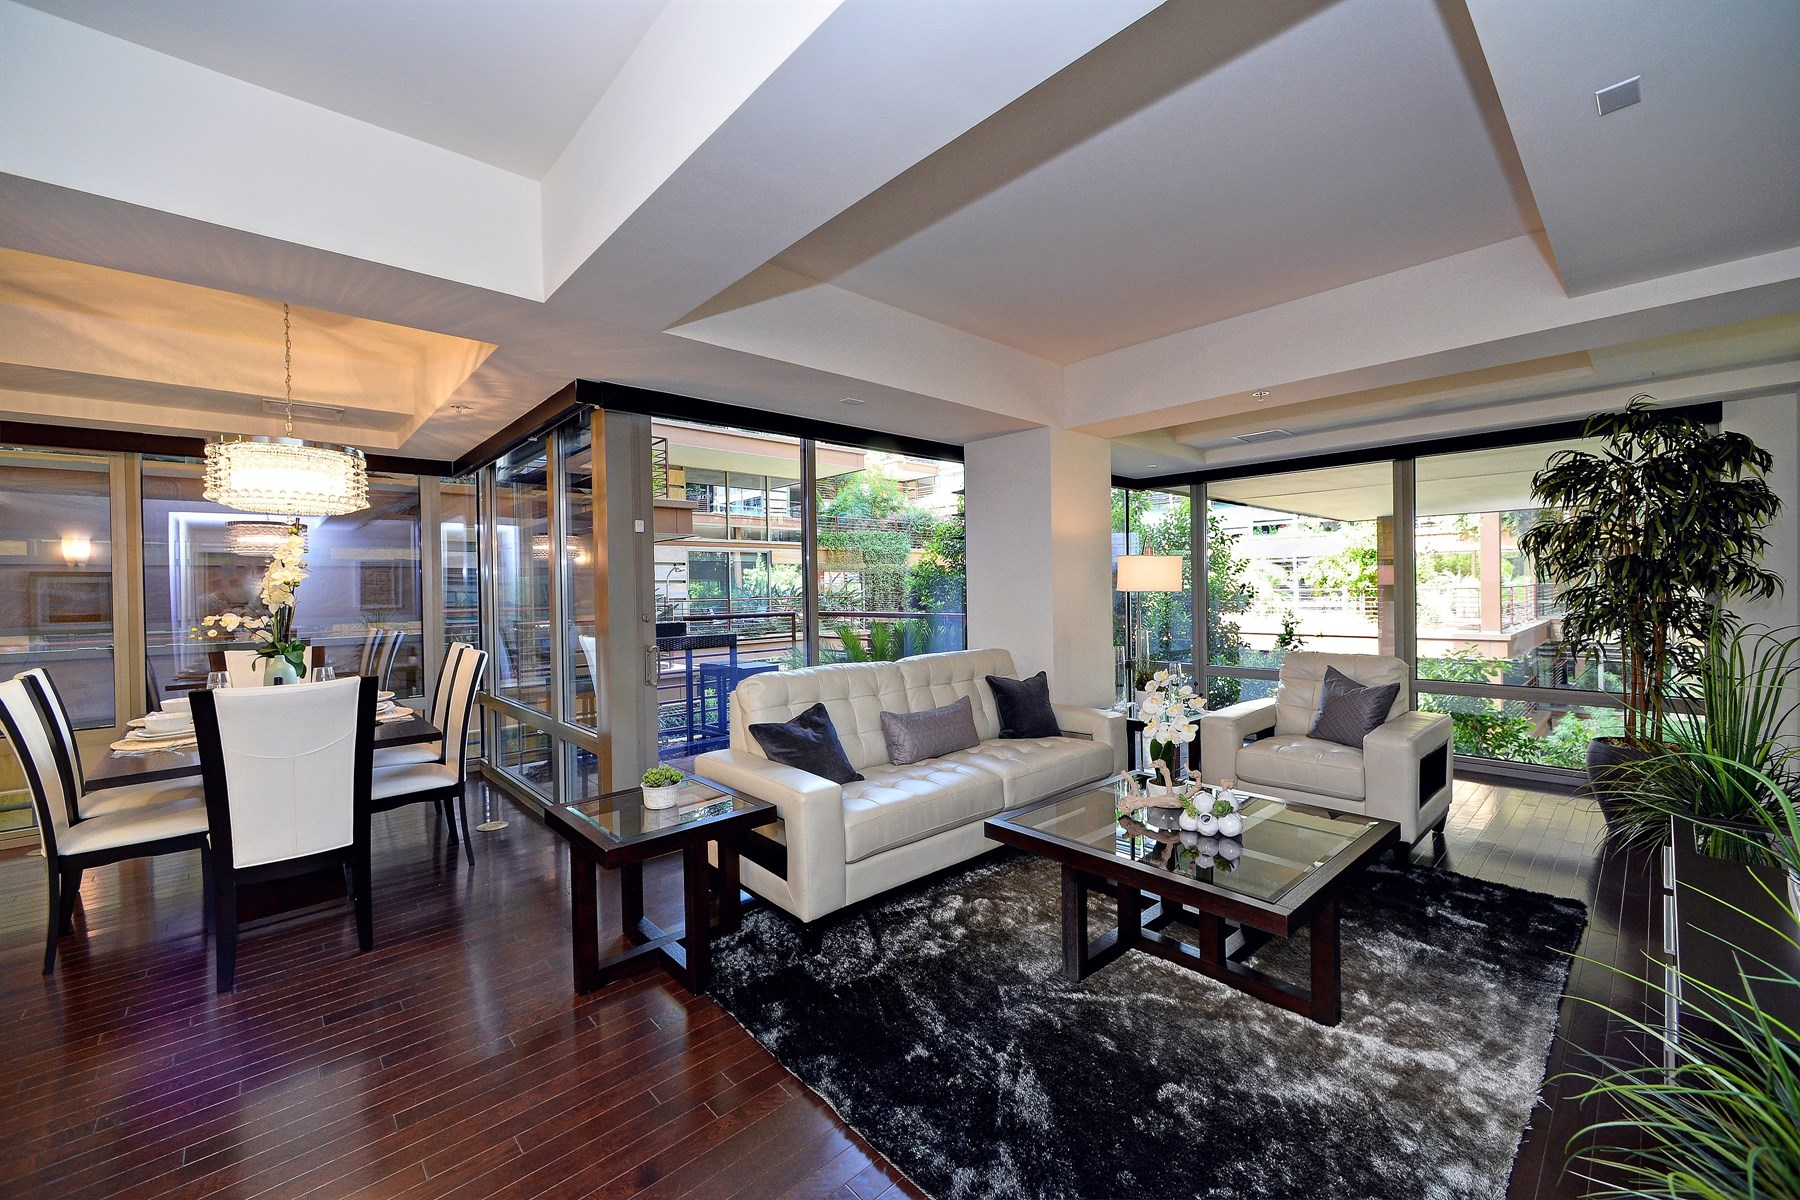 Property For Sale at Beautiful Professionally Decorated & Furnished Optima Camelview Village Condo